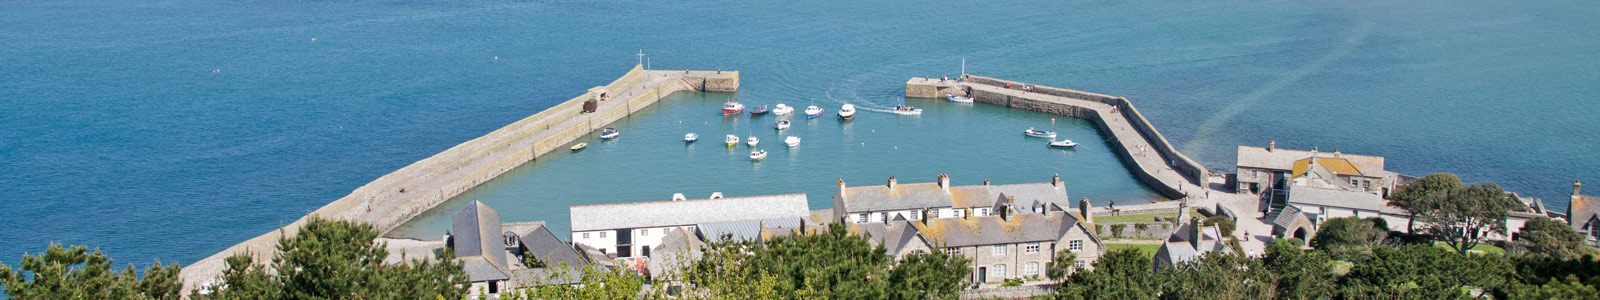 Things to do in Cornwall:  St Michaels Mount Harbour